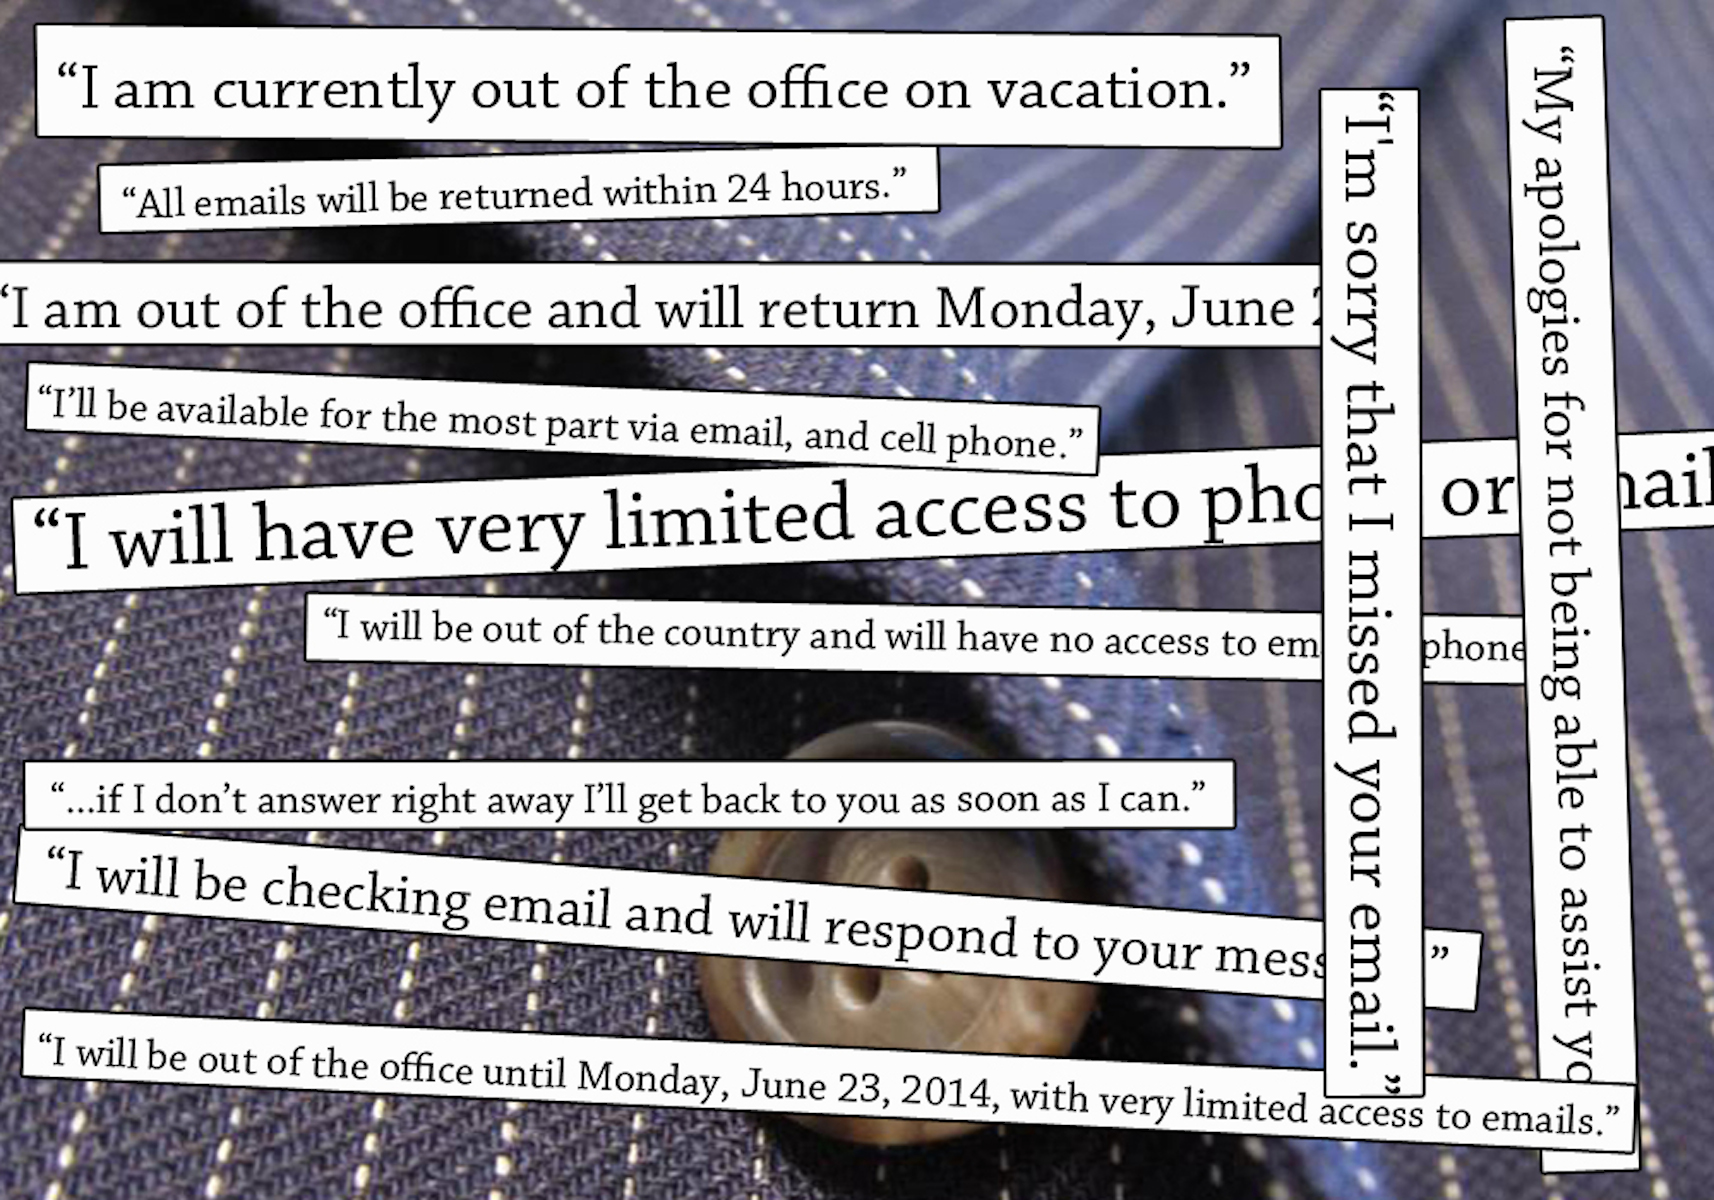 out of office email messages the riveter magazine